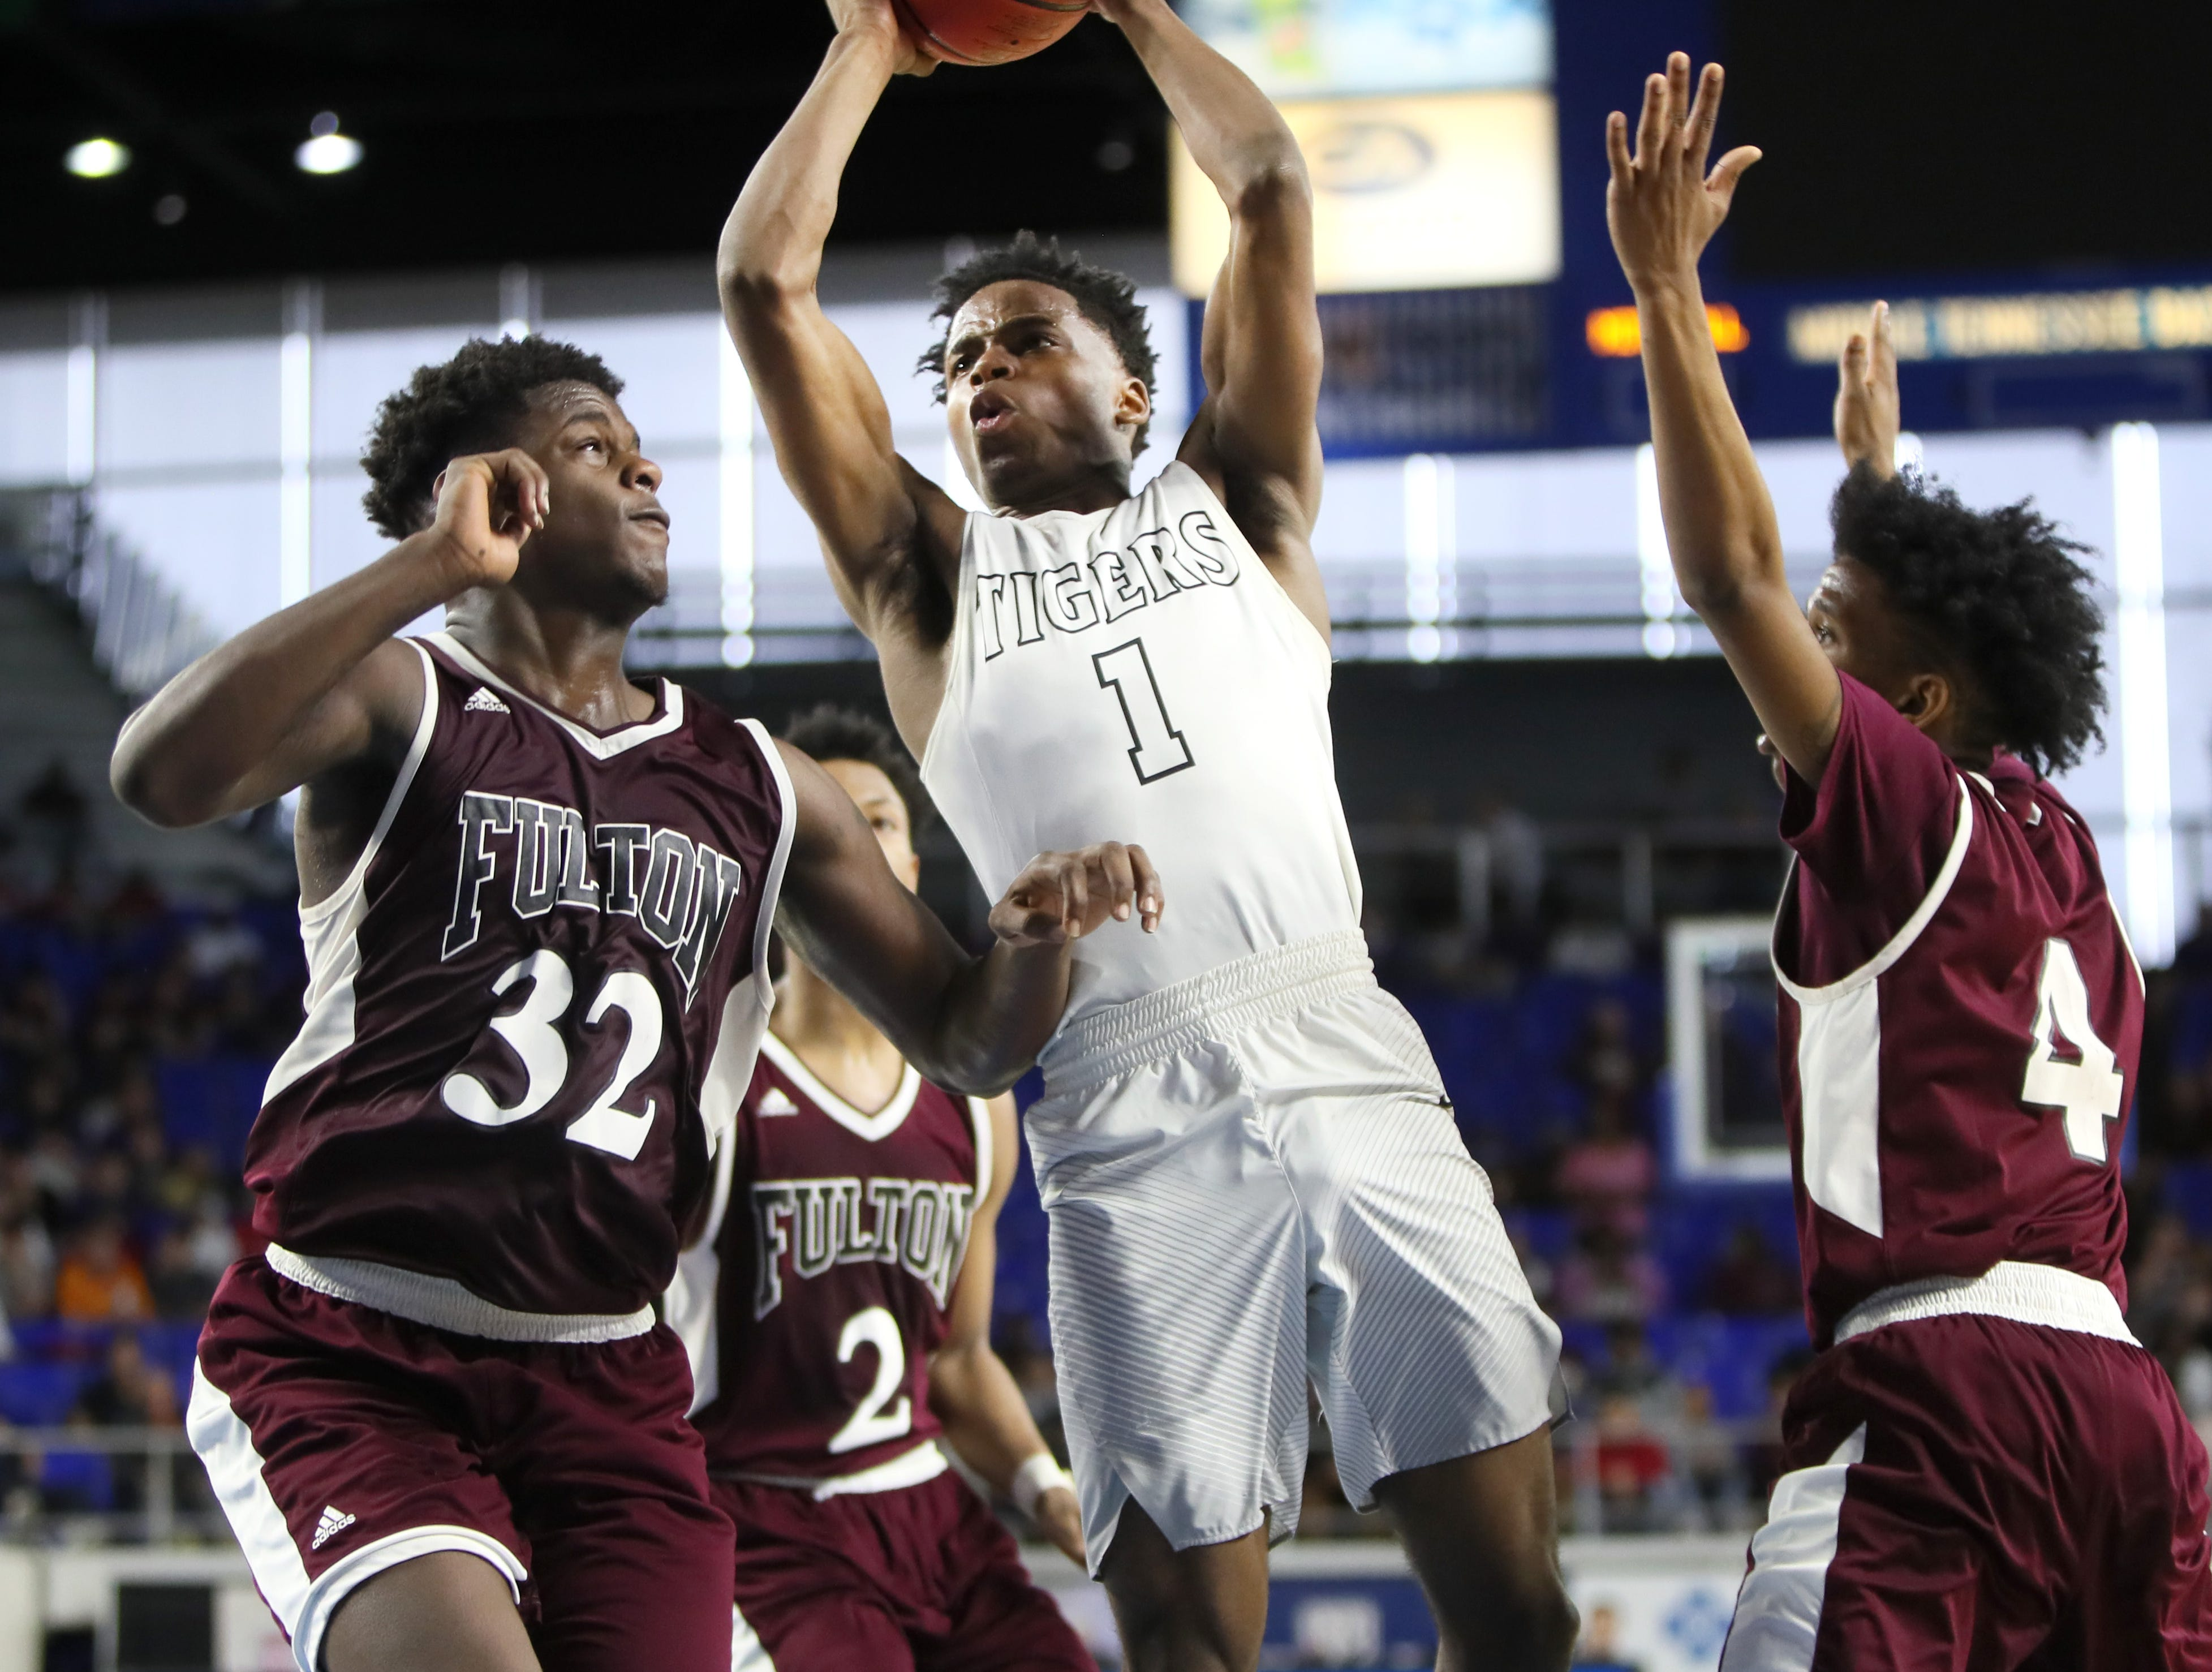 Mitchell's Mikell Rice shoots the ball over Fulton's Deshaun Page, left, and Edward Lacy during the TSSAA Division I basketball state tournament in Murfreesboro on Wednesday, March 13, 2019.